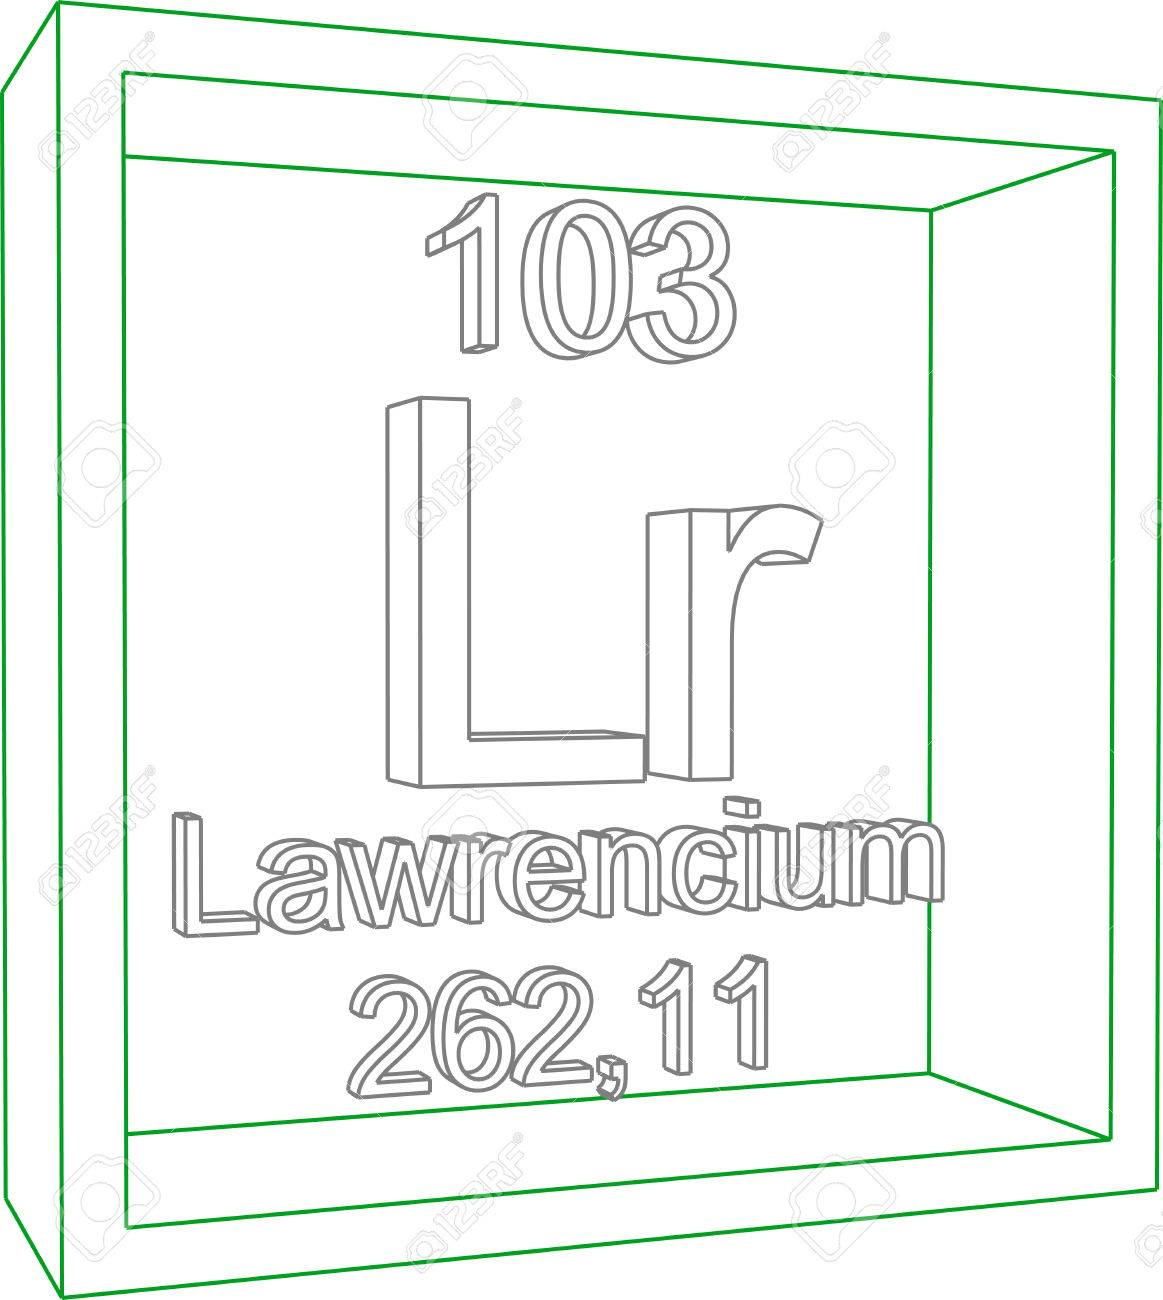 Lawrencium periodic table gallery periodic restaurant layout periodic table of elements lawrencium royalty free cliparts 57951658 periodic table of elements lawrencium stock vector gamestrikefo Image collections